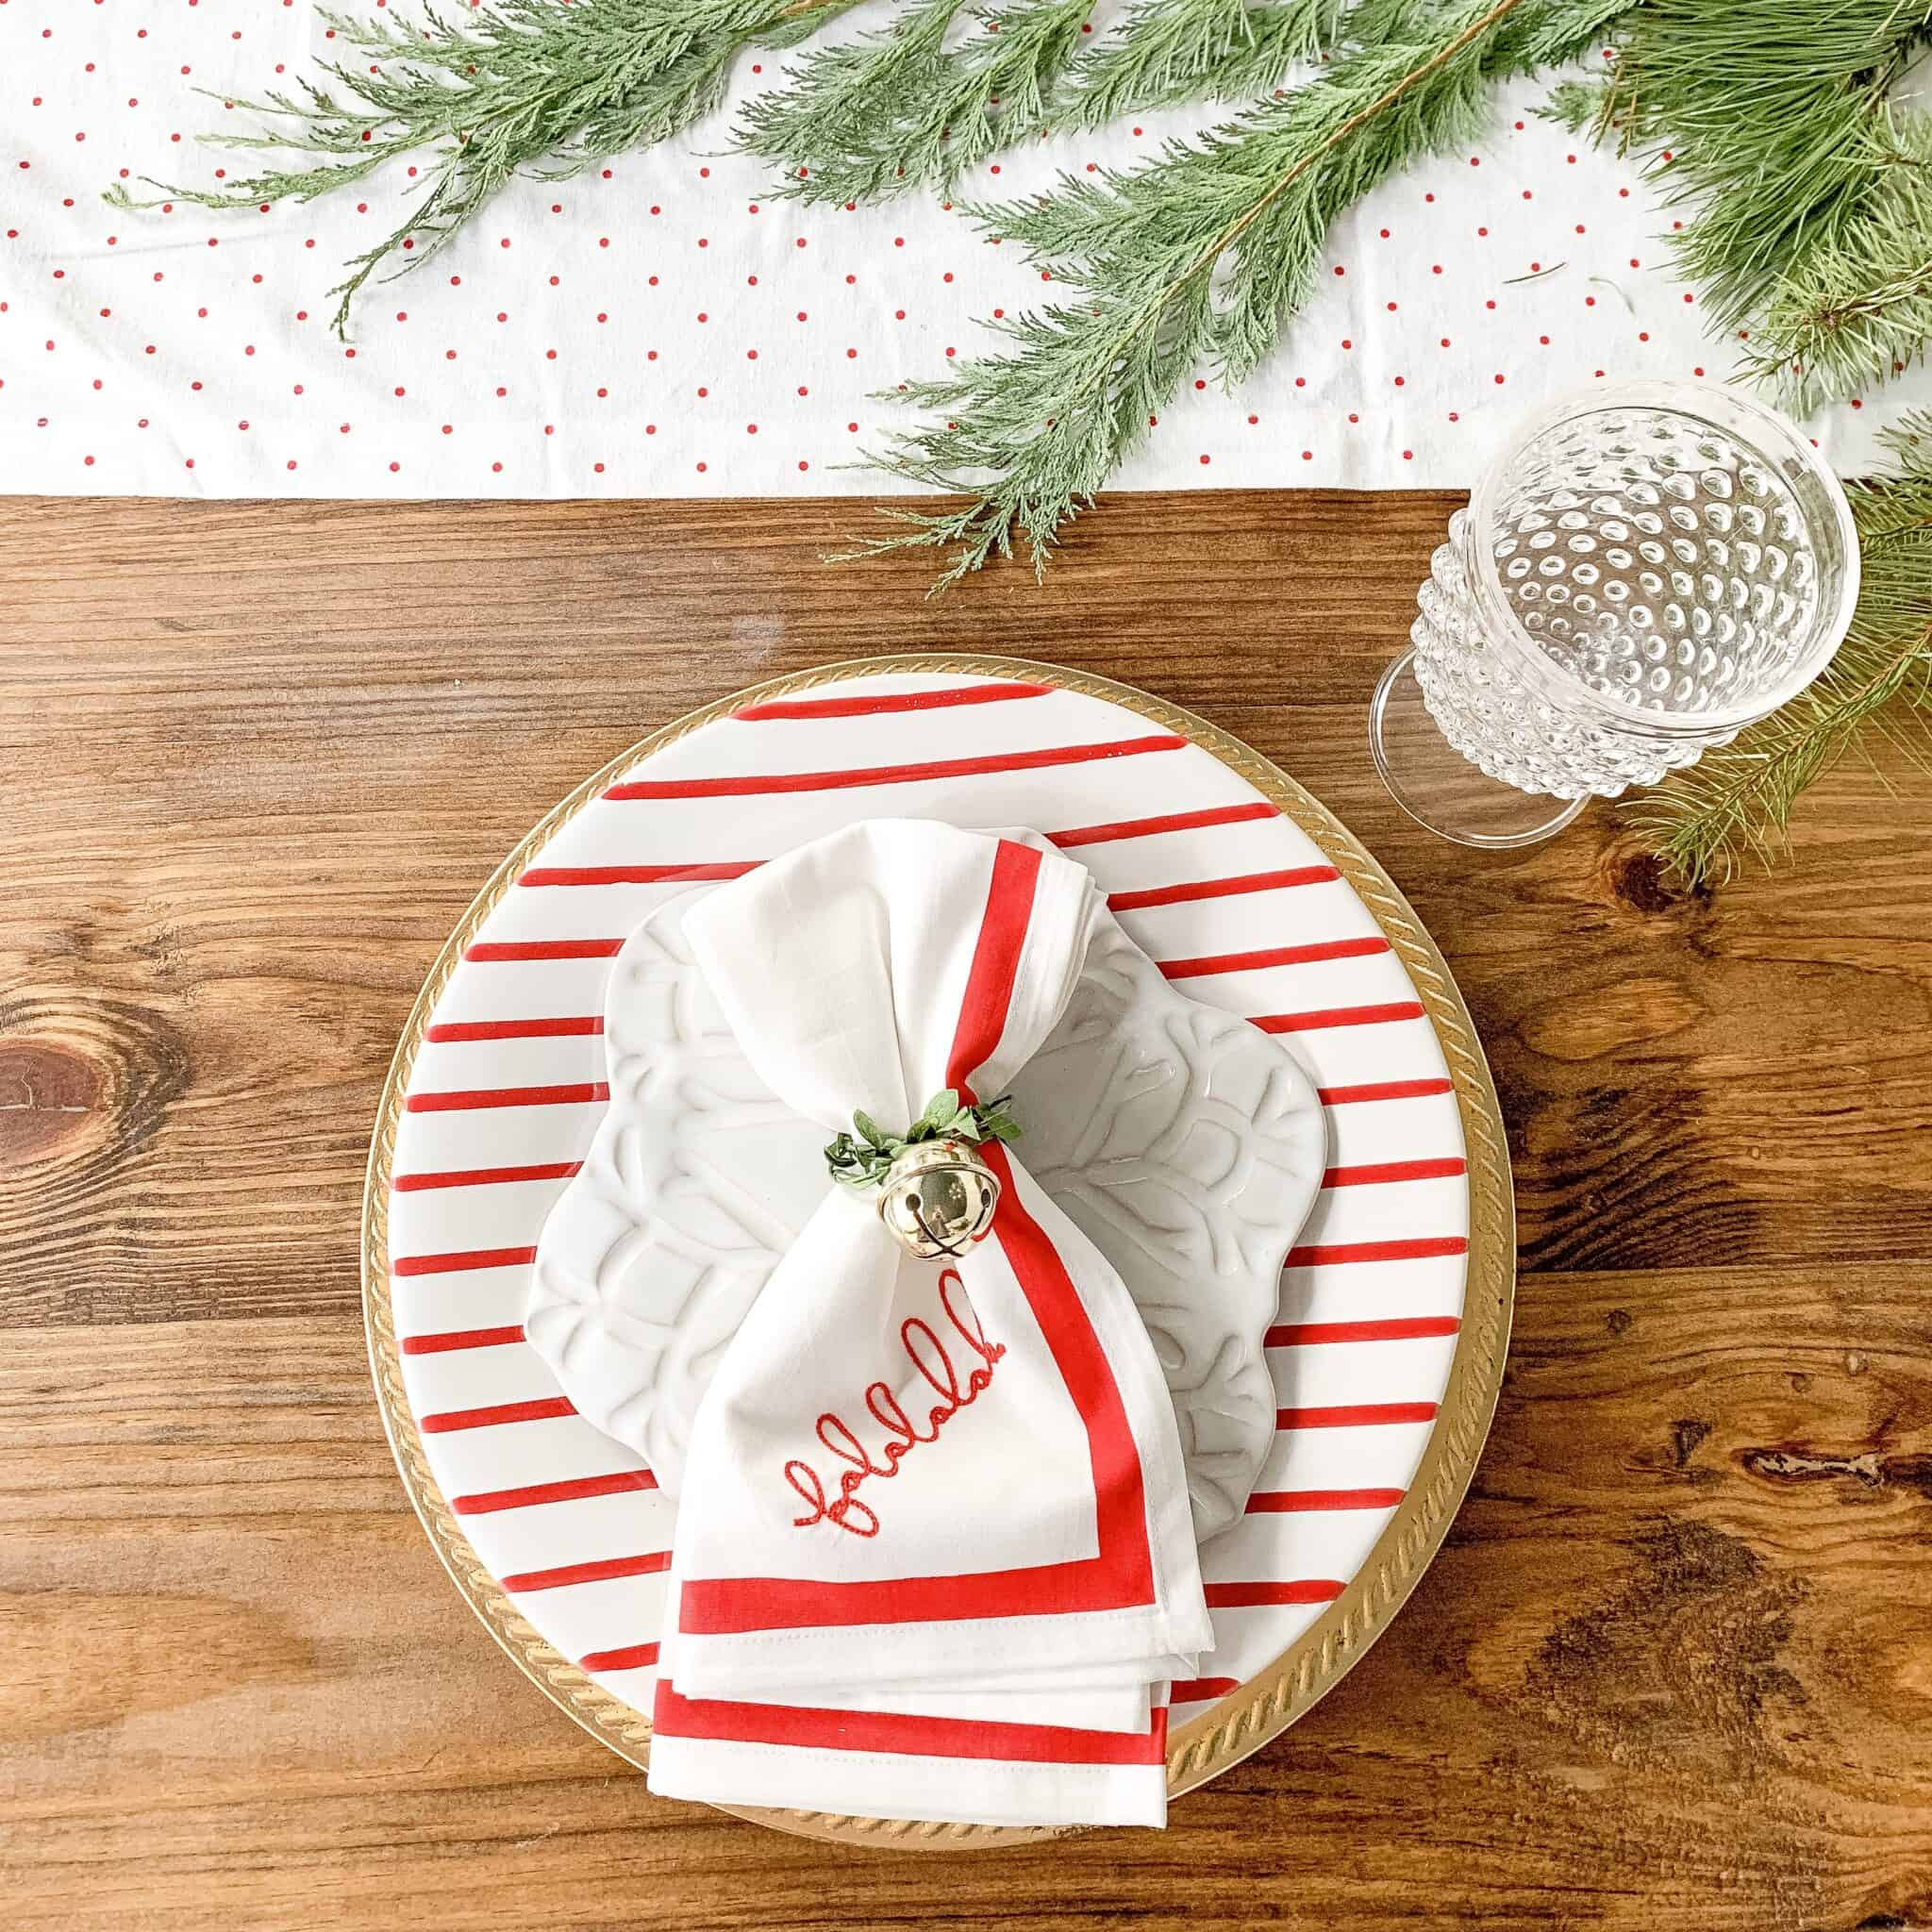 red striped plates for Christmas